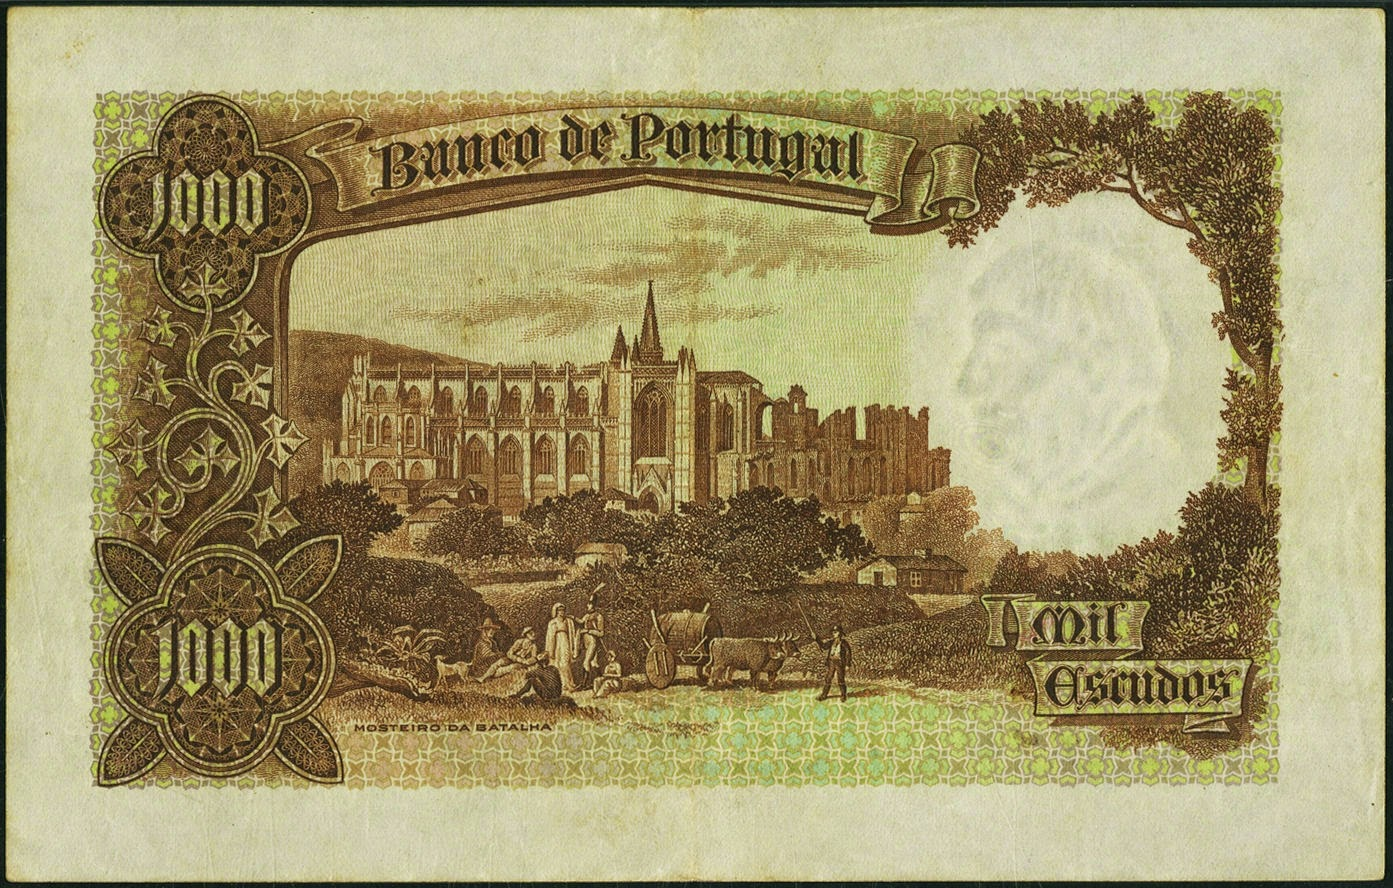 Portugal money currency 1000 Escudos banknote 1938 Monastery of Batalha